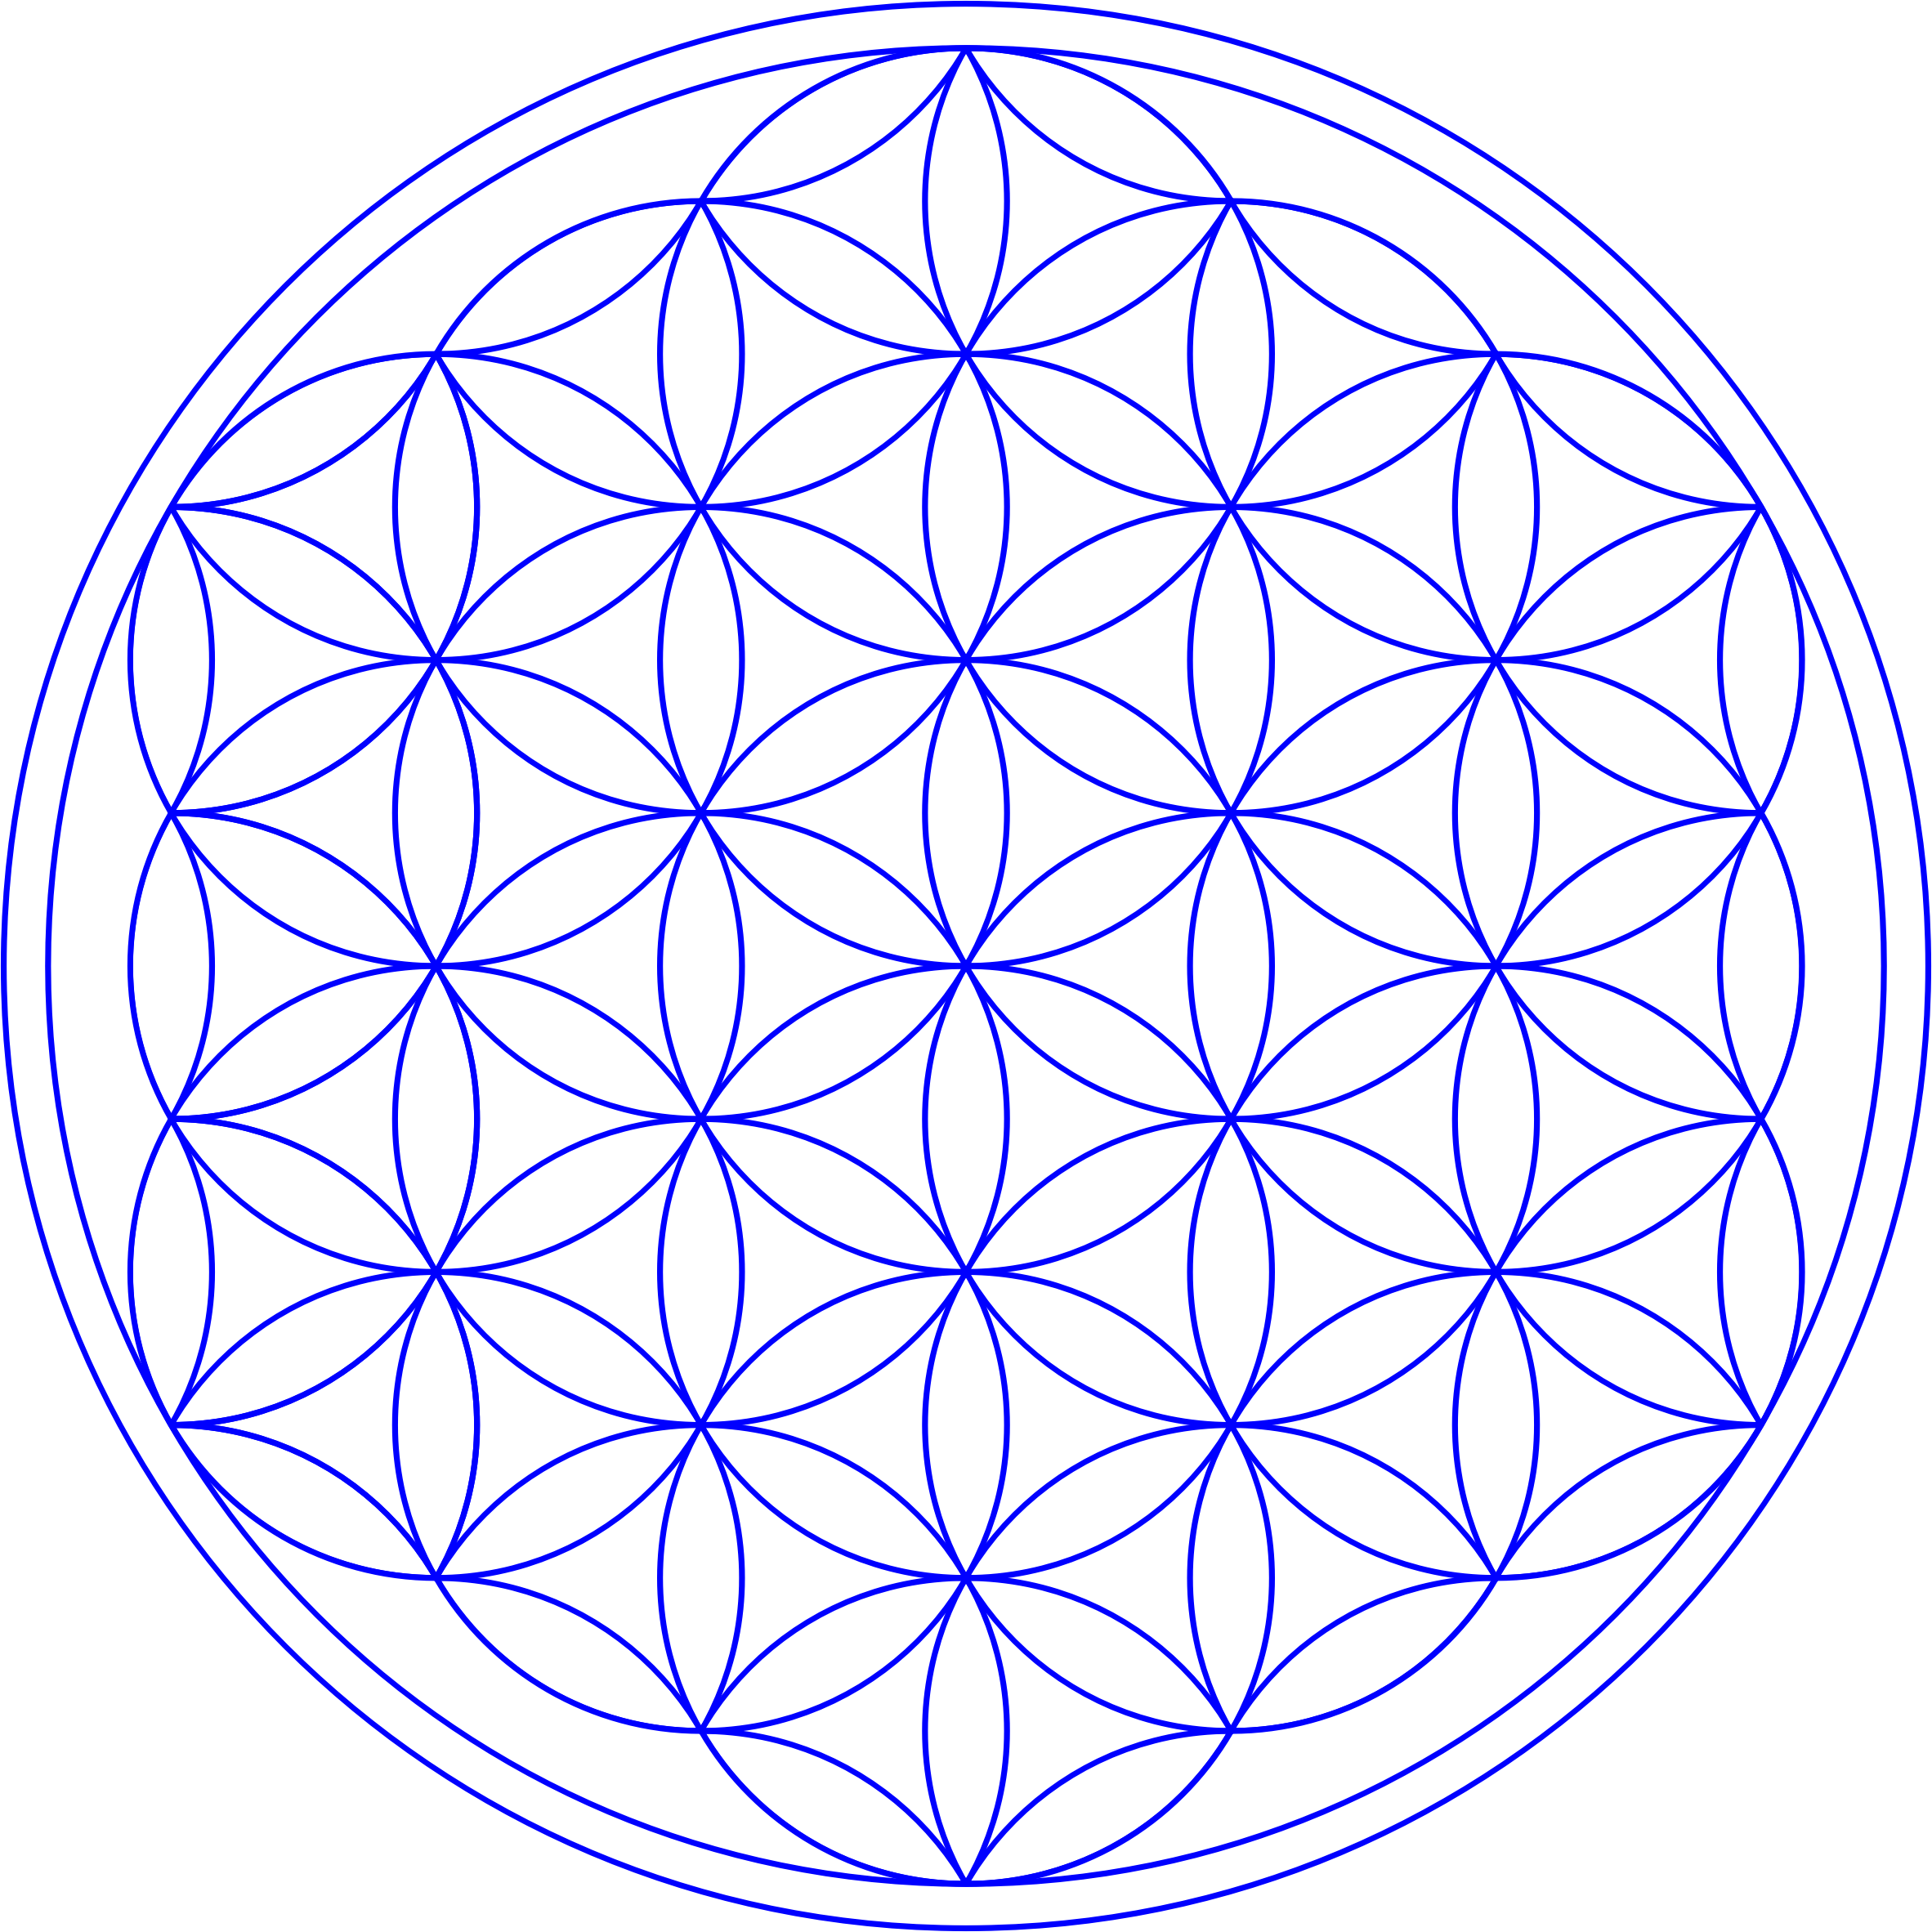 Flower of Life by Manuela.